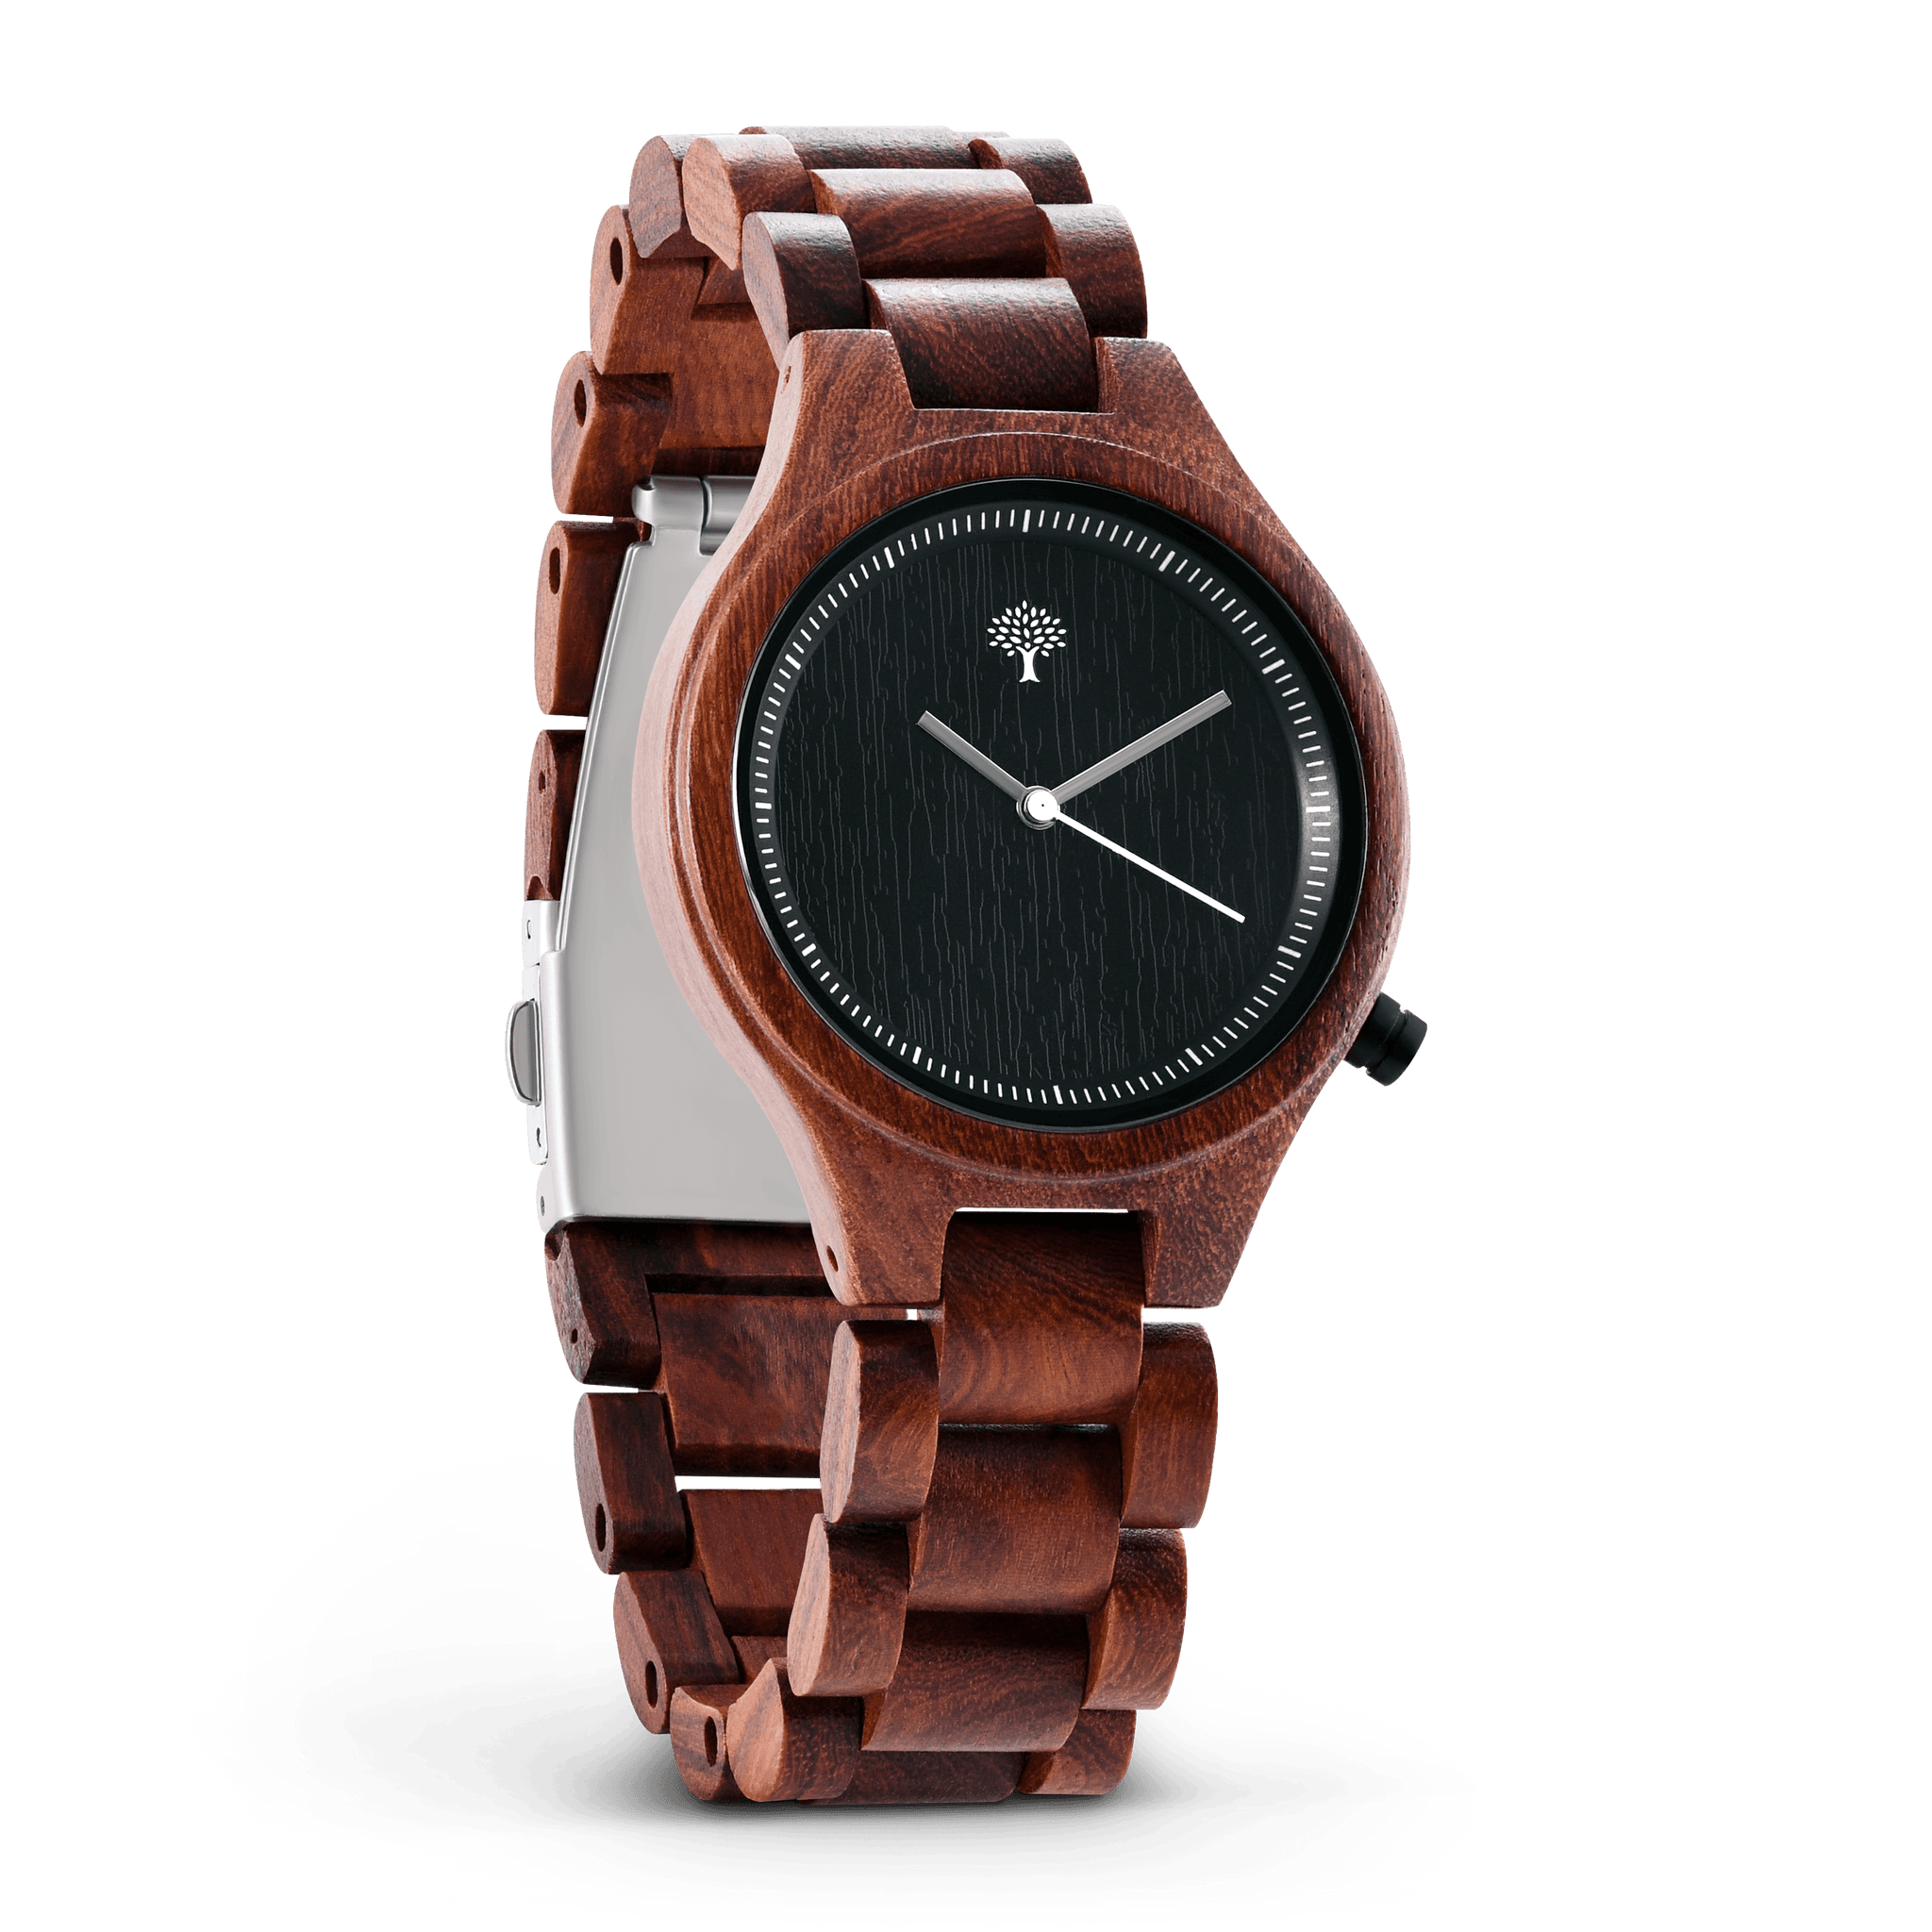 watches rouge tree leather couples a red watch wooden please make pair wood bamboo hut products